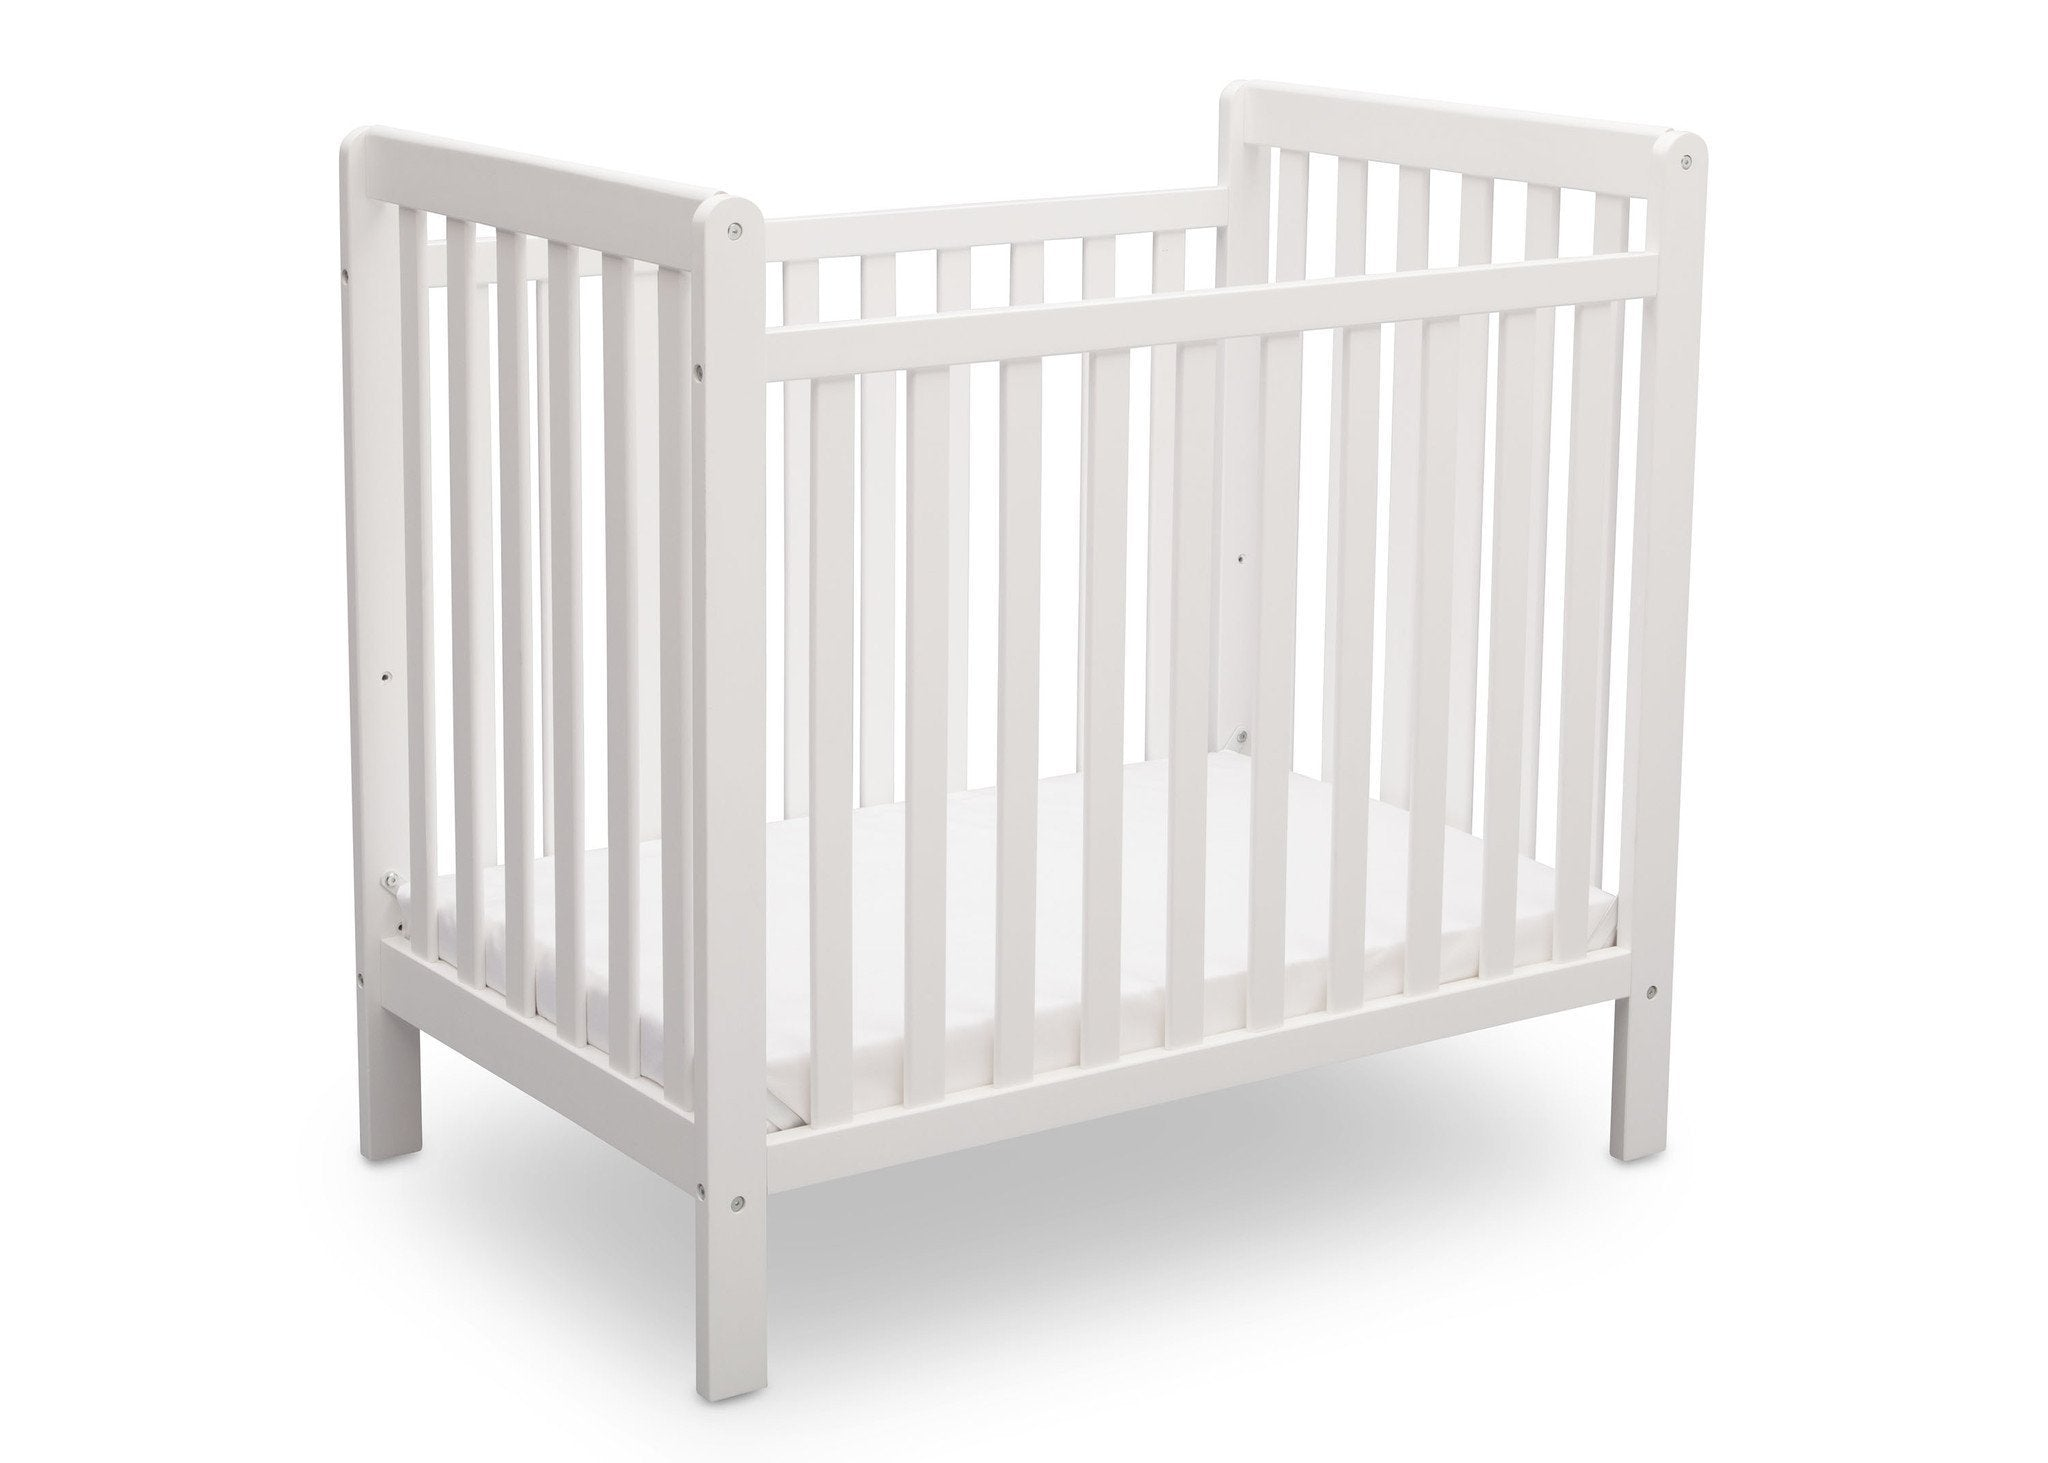 me in can infancy aden it dream pin on cribs from and child is your a designed multipurpose the be crib used convertible stylishly by mini